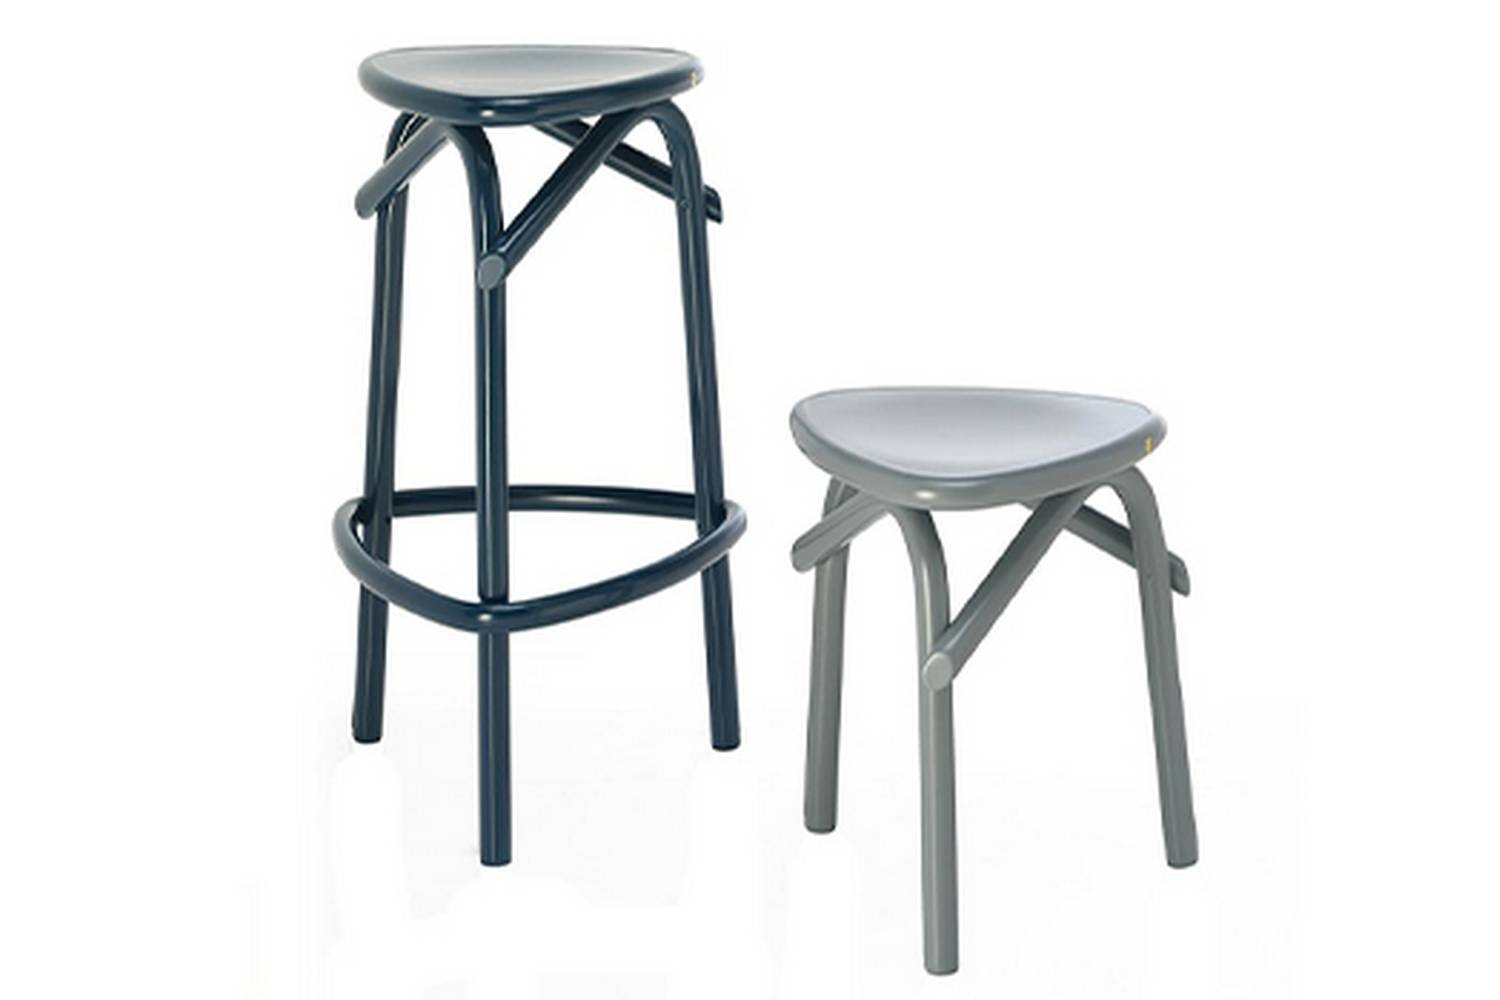 Trio Stool by Martino Gamper for Wiener GTV Design